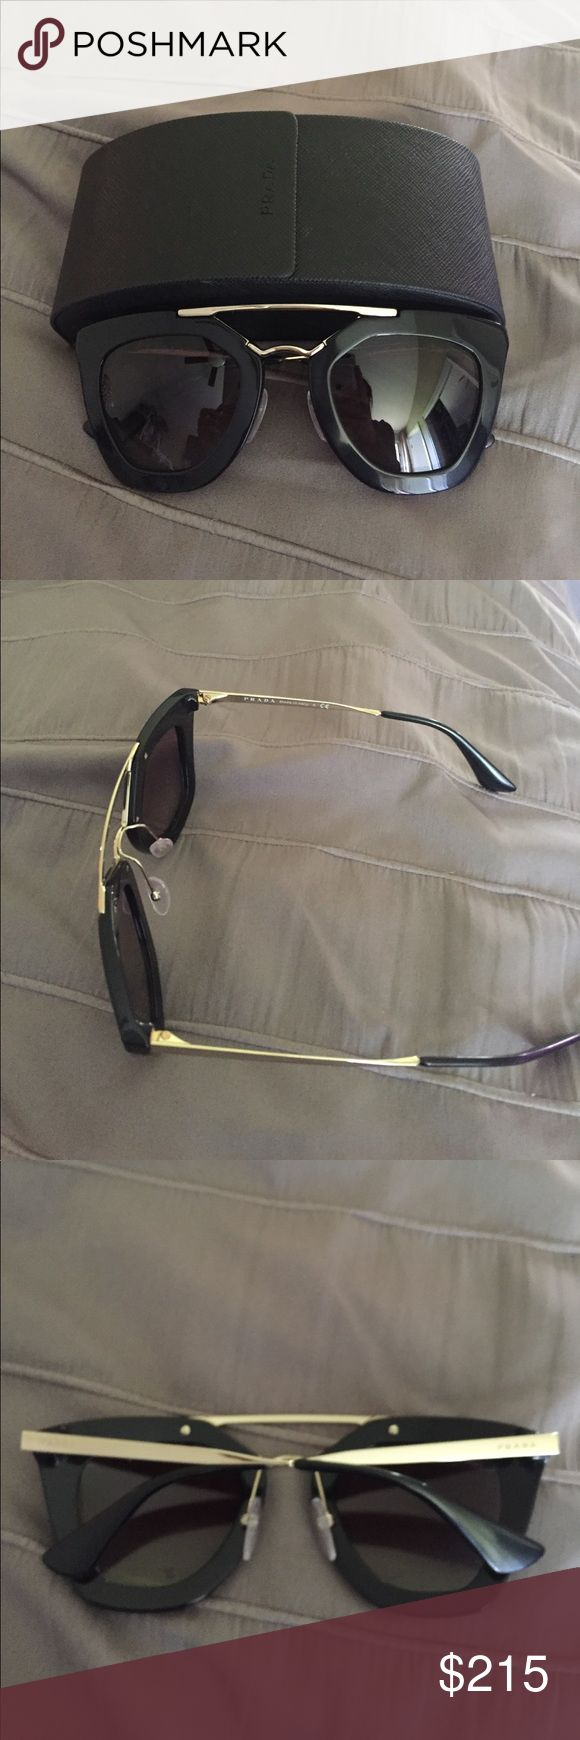 Prada Aviator Sumglasses Like new Prada aviator sunglasses. Only worn once of that. Comes with case and tag also purchased these from Nordstrom store! They are black with gold hardware. No scratches or marks on them. Prada Accessories Sunglasses